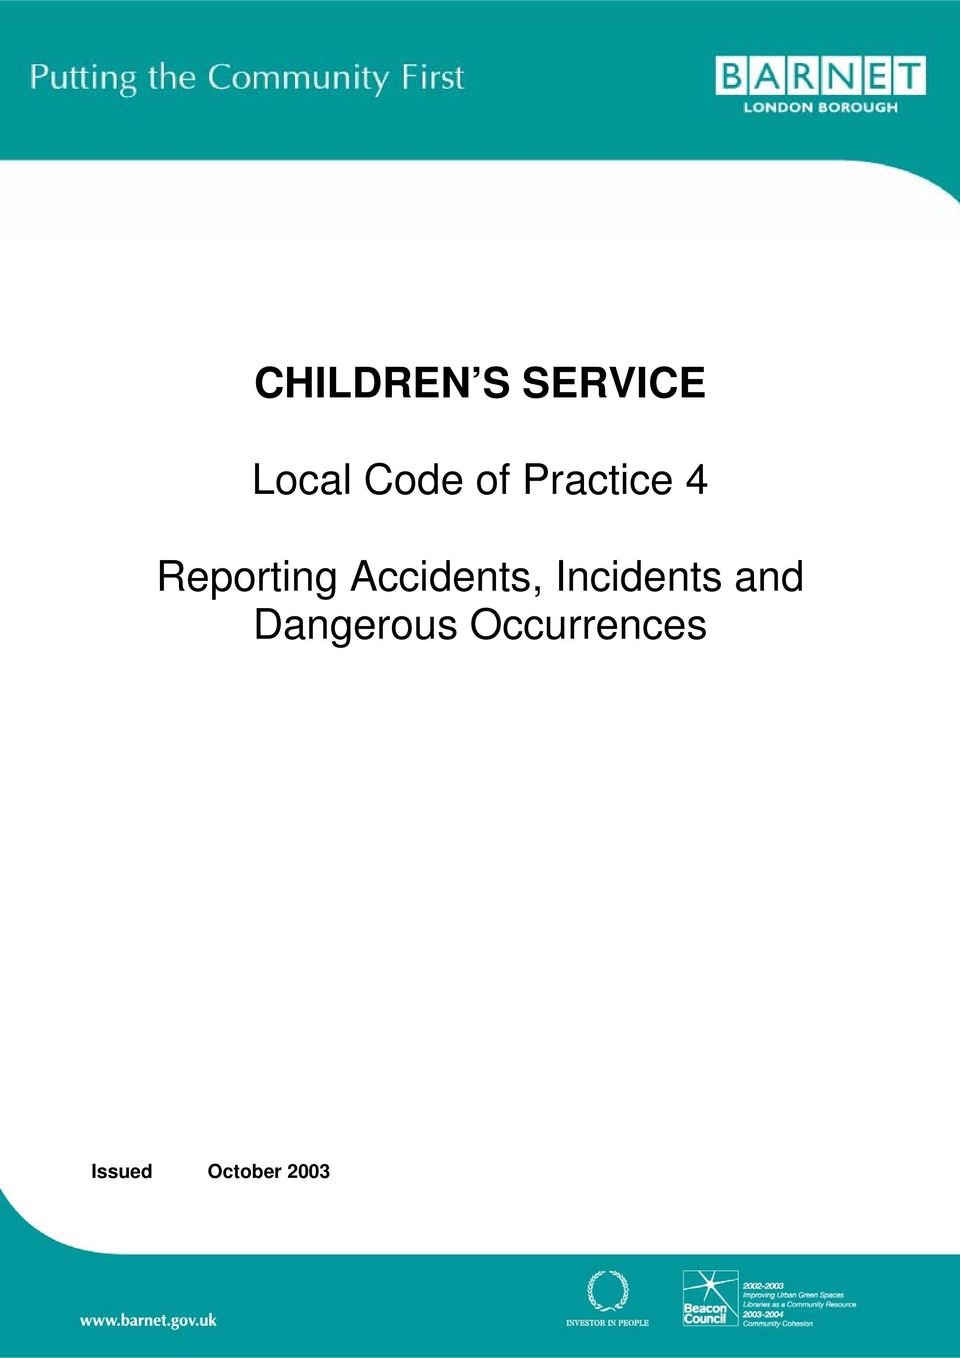 Accidents, Incidents and